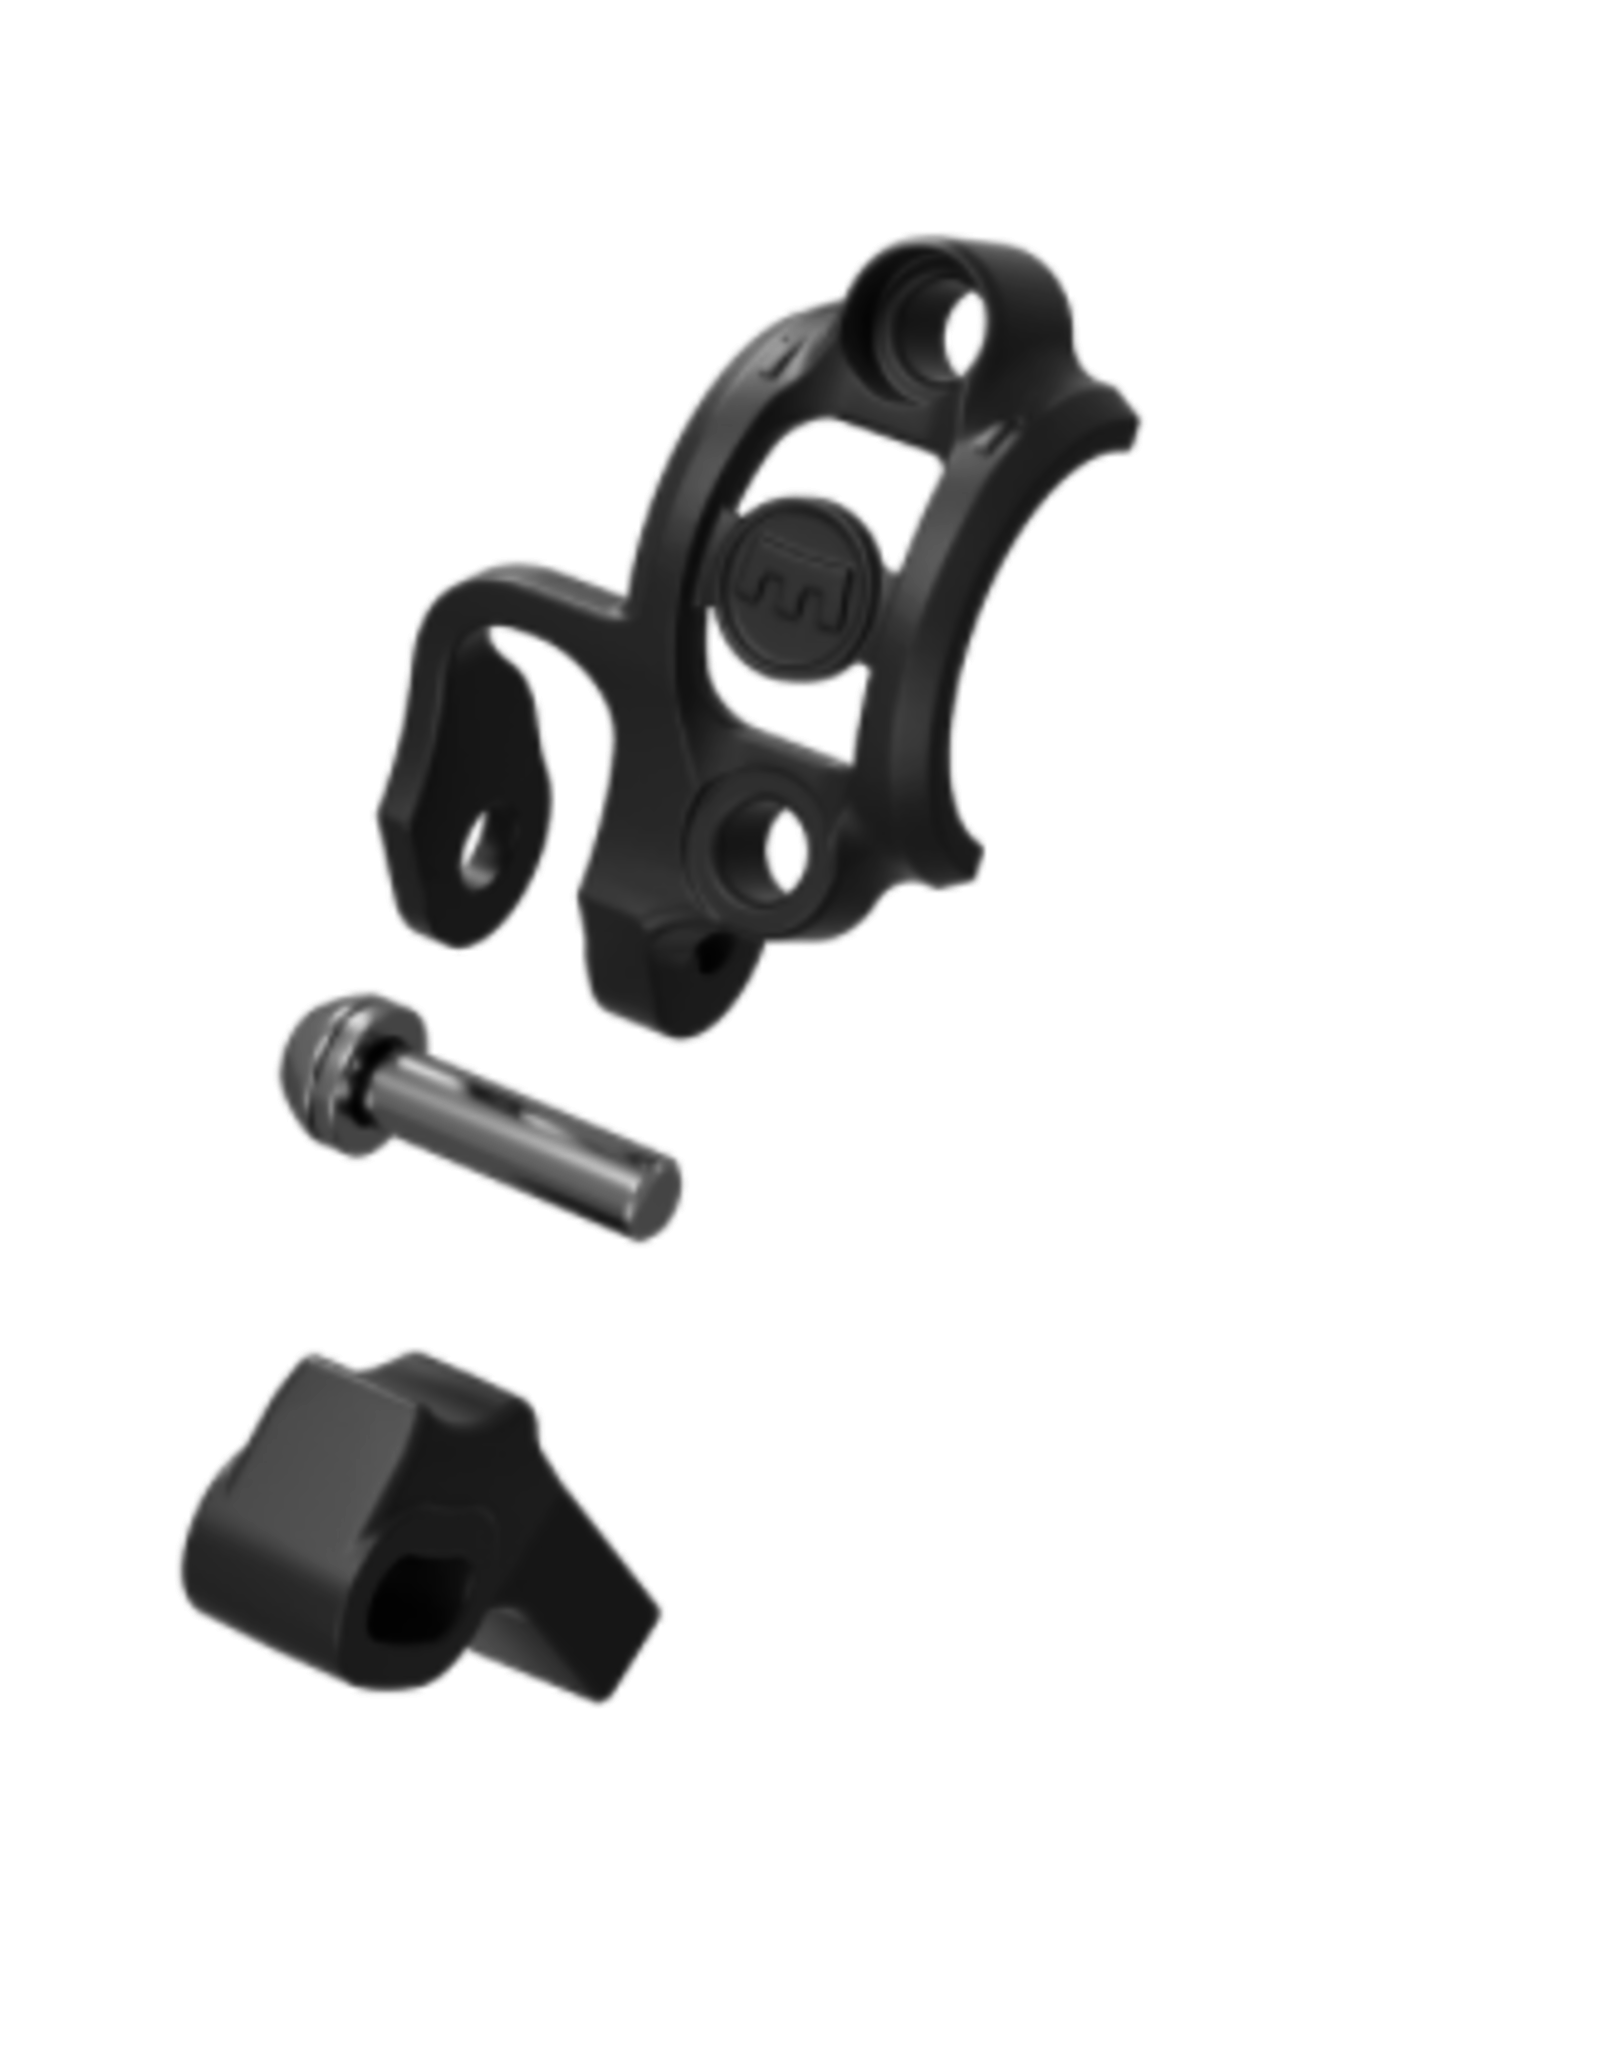 Magura Magura Handlebar clamp Shiftmix 4, right, for Shimano I-Spec EV, black (PU = 1 piece)